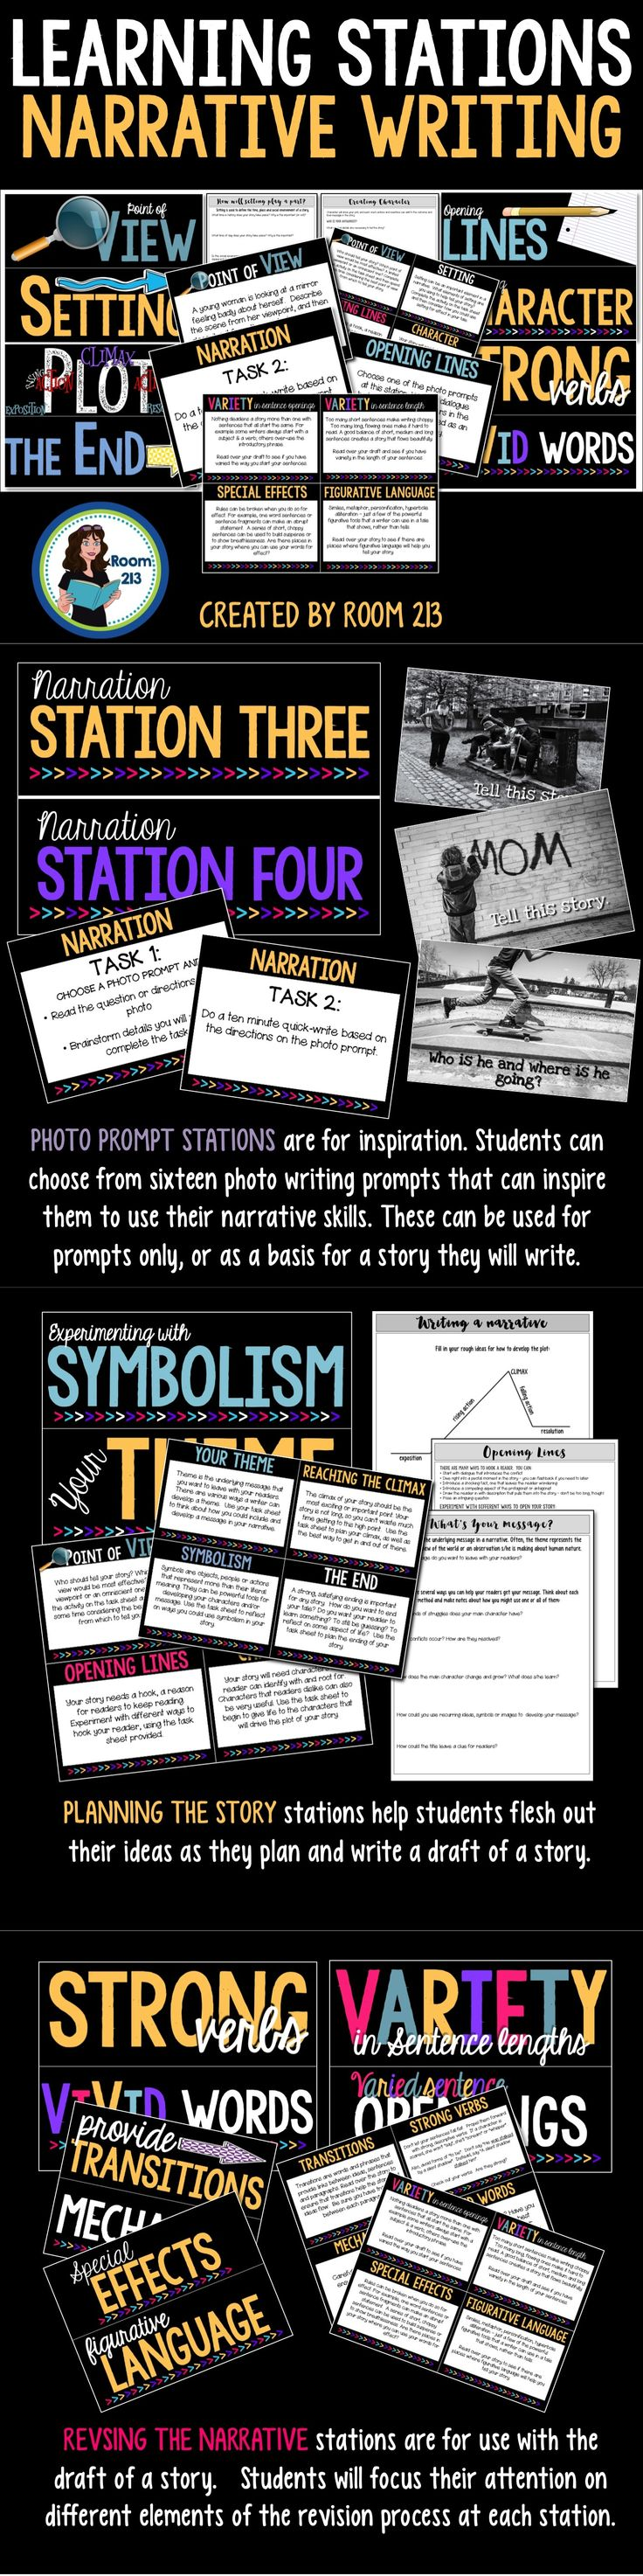 NARRATIVE & CREATIVE WRITING: get your students focused, thinking and writing as they explore the elements of narration. Stations for revision are included too!